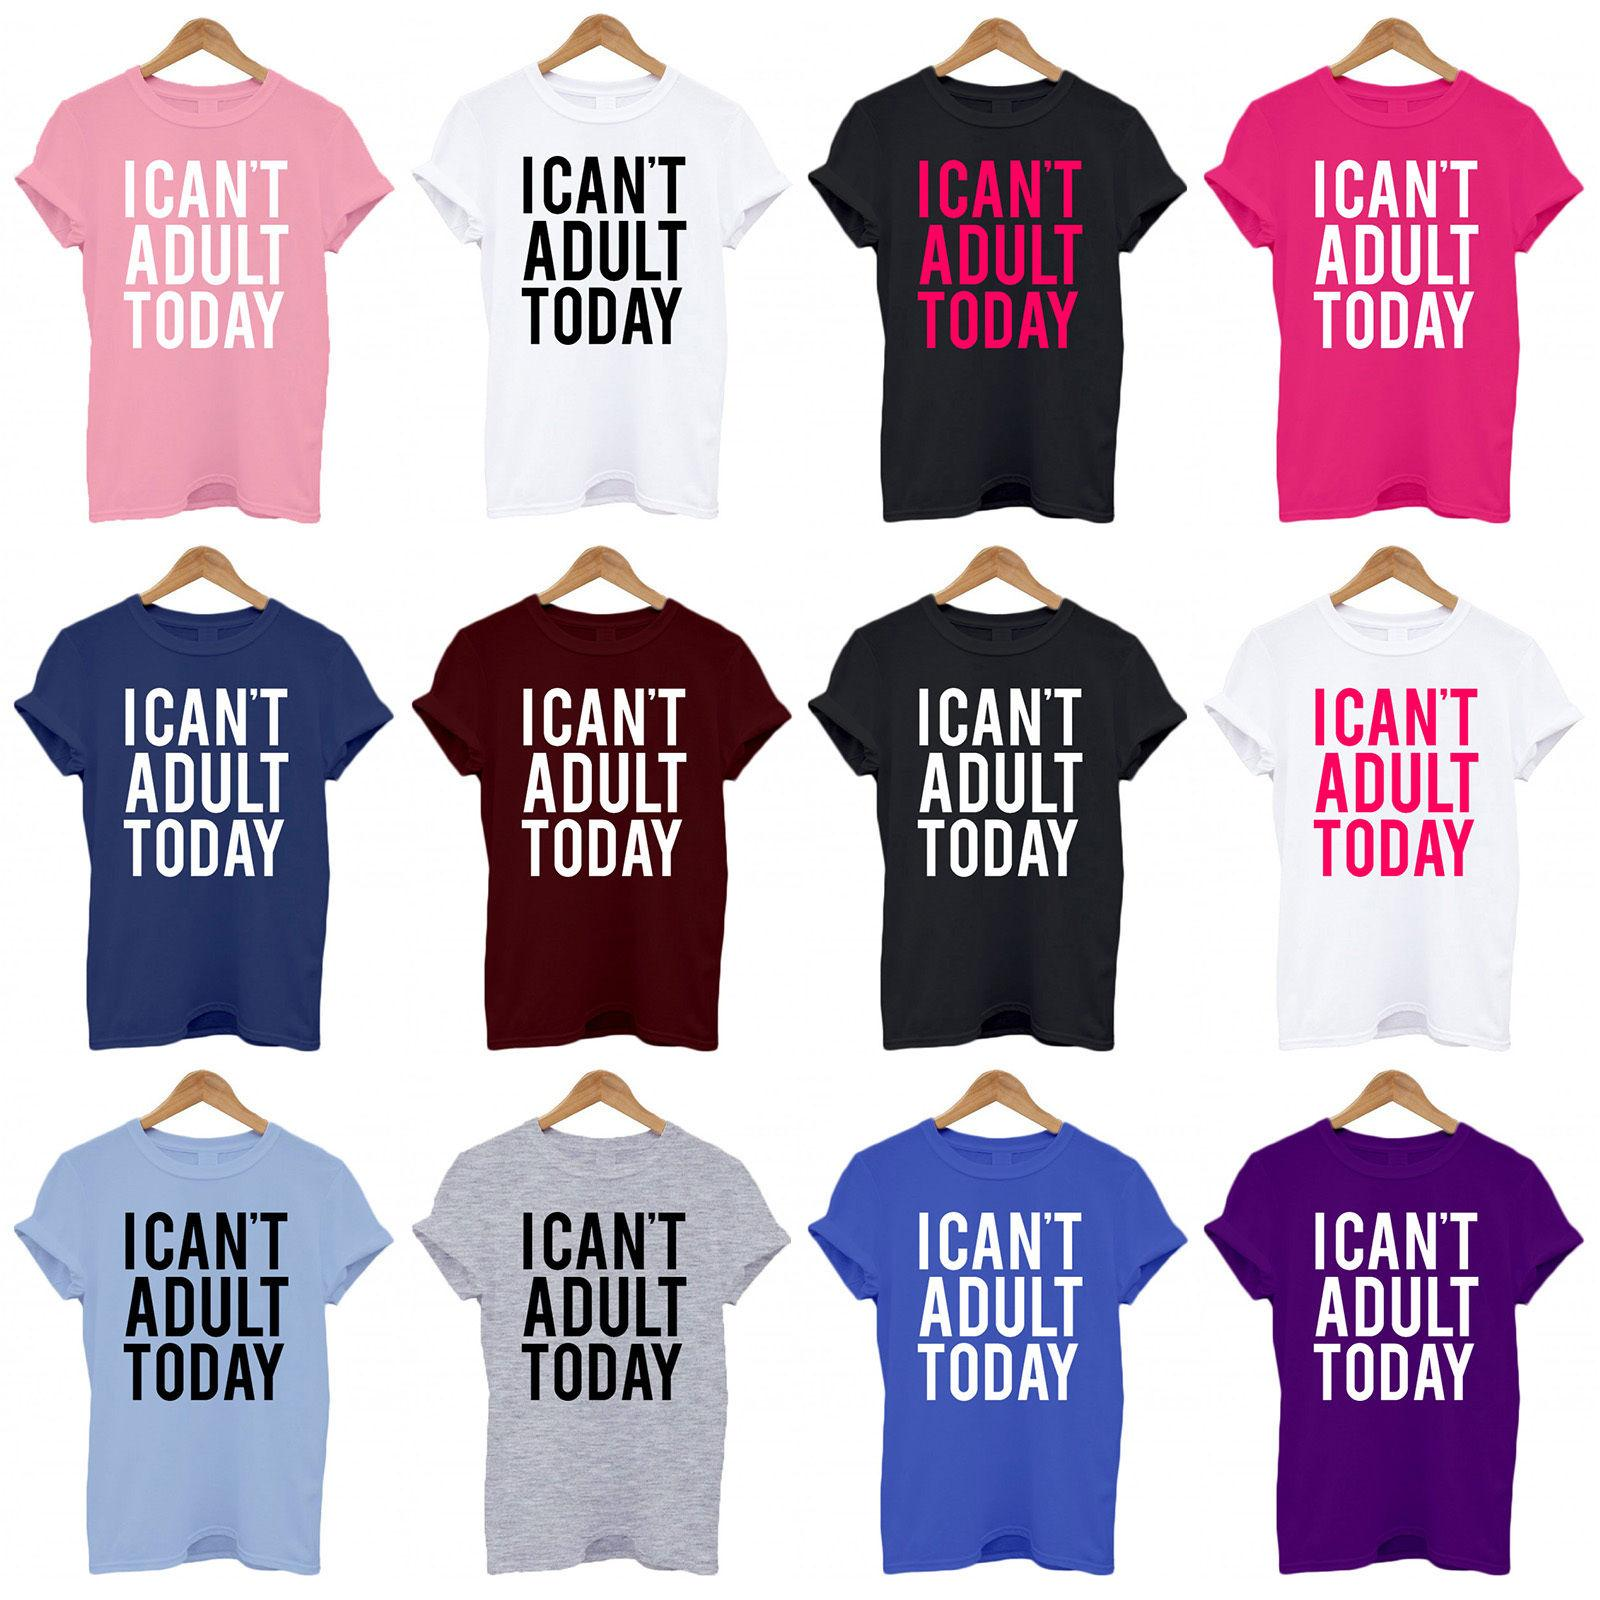 8c9254674f Details Zu I CANT ADULT TODAY, Funny, Tumblr, Uni, Christmas, Secret Santa  Unisex T Shirt Funny Unisex Casual Tee Gift Cool Funny Shirts One Day Shirts  From ...